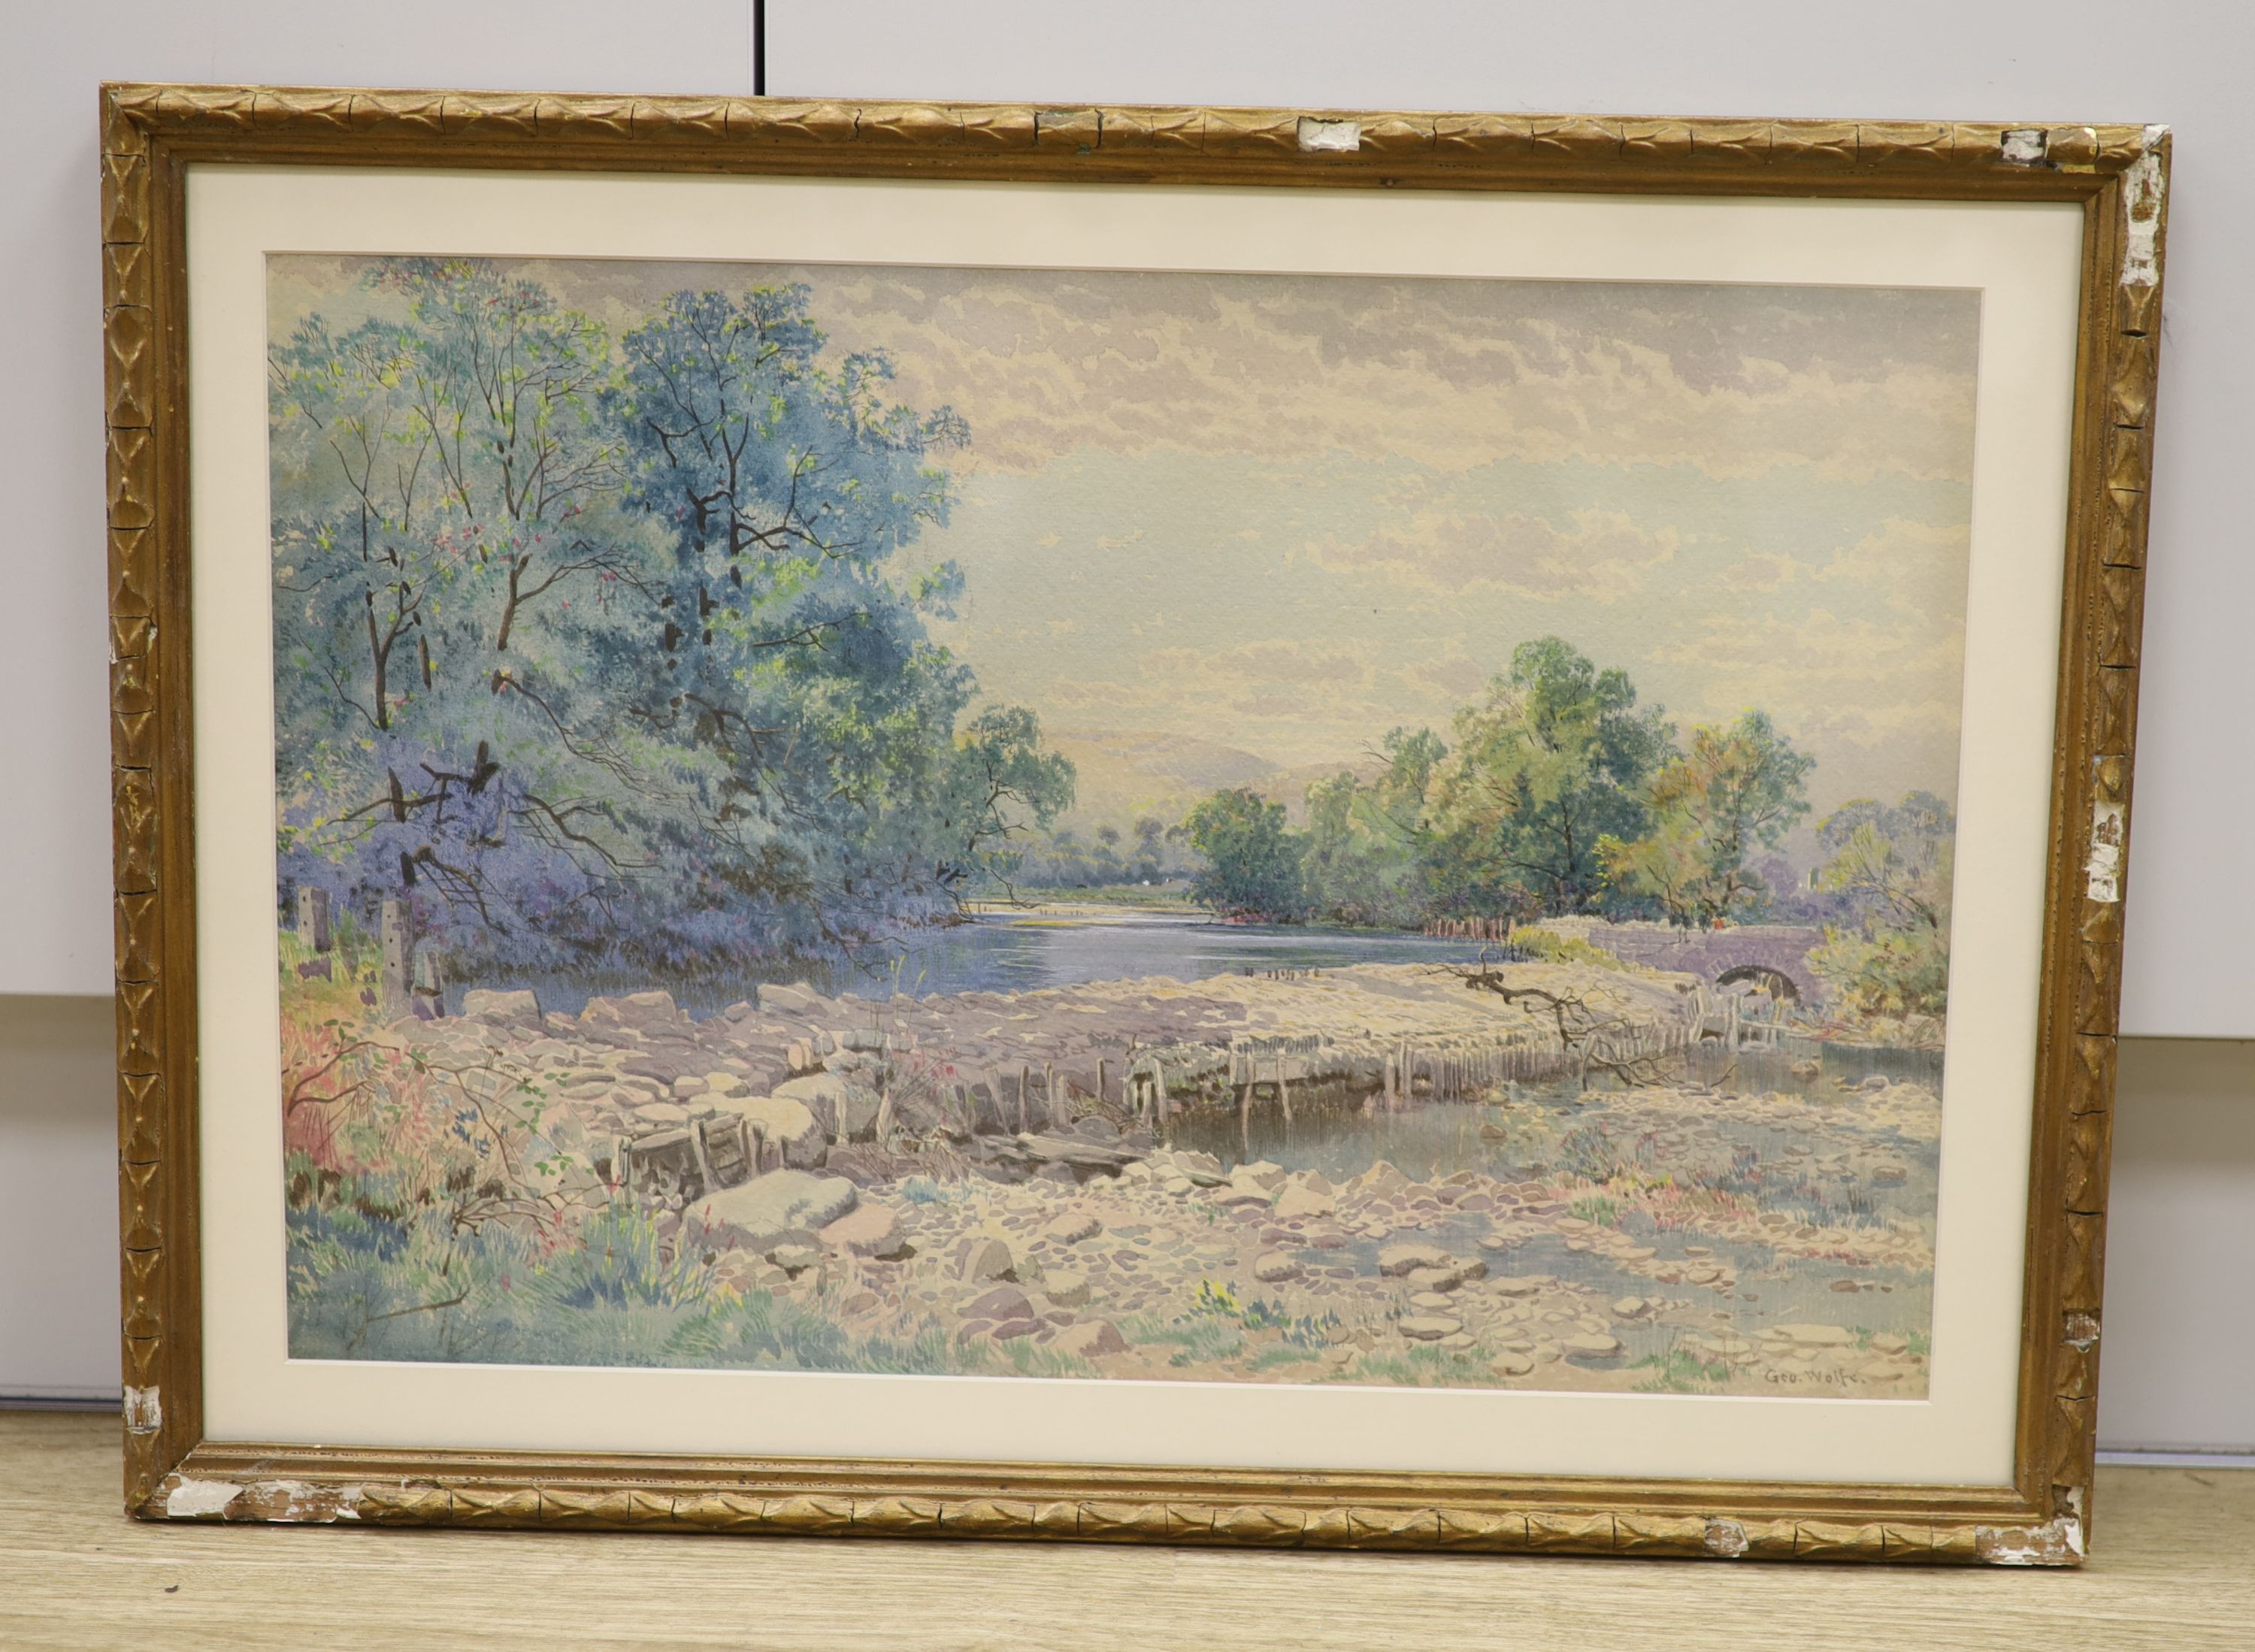 George Wolfe (1834-1890), watercolour, River landscape with weir, signed, 33 x 50cm - Image 2 of 3